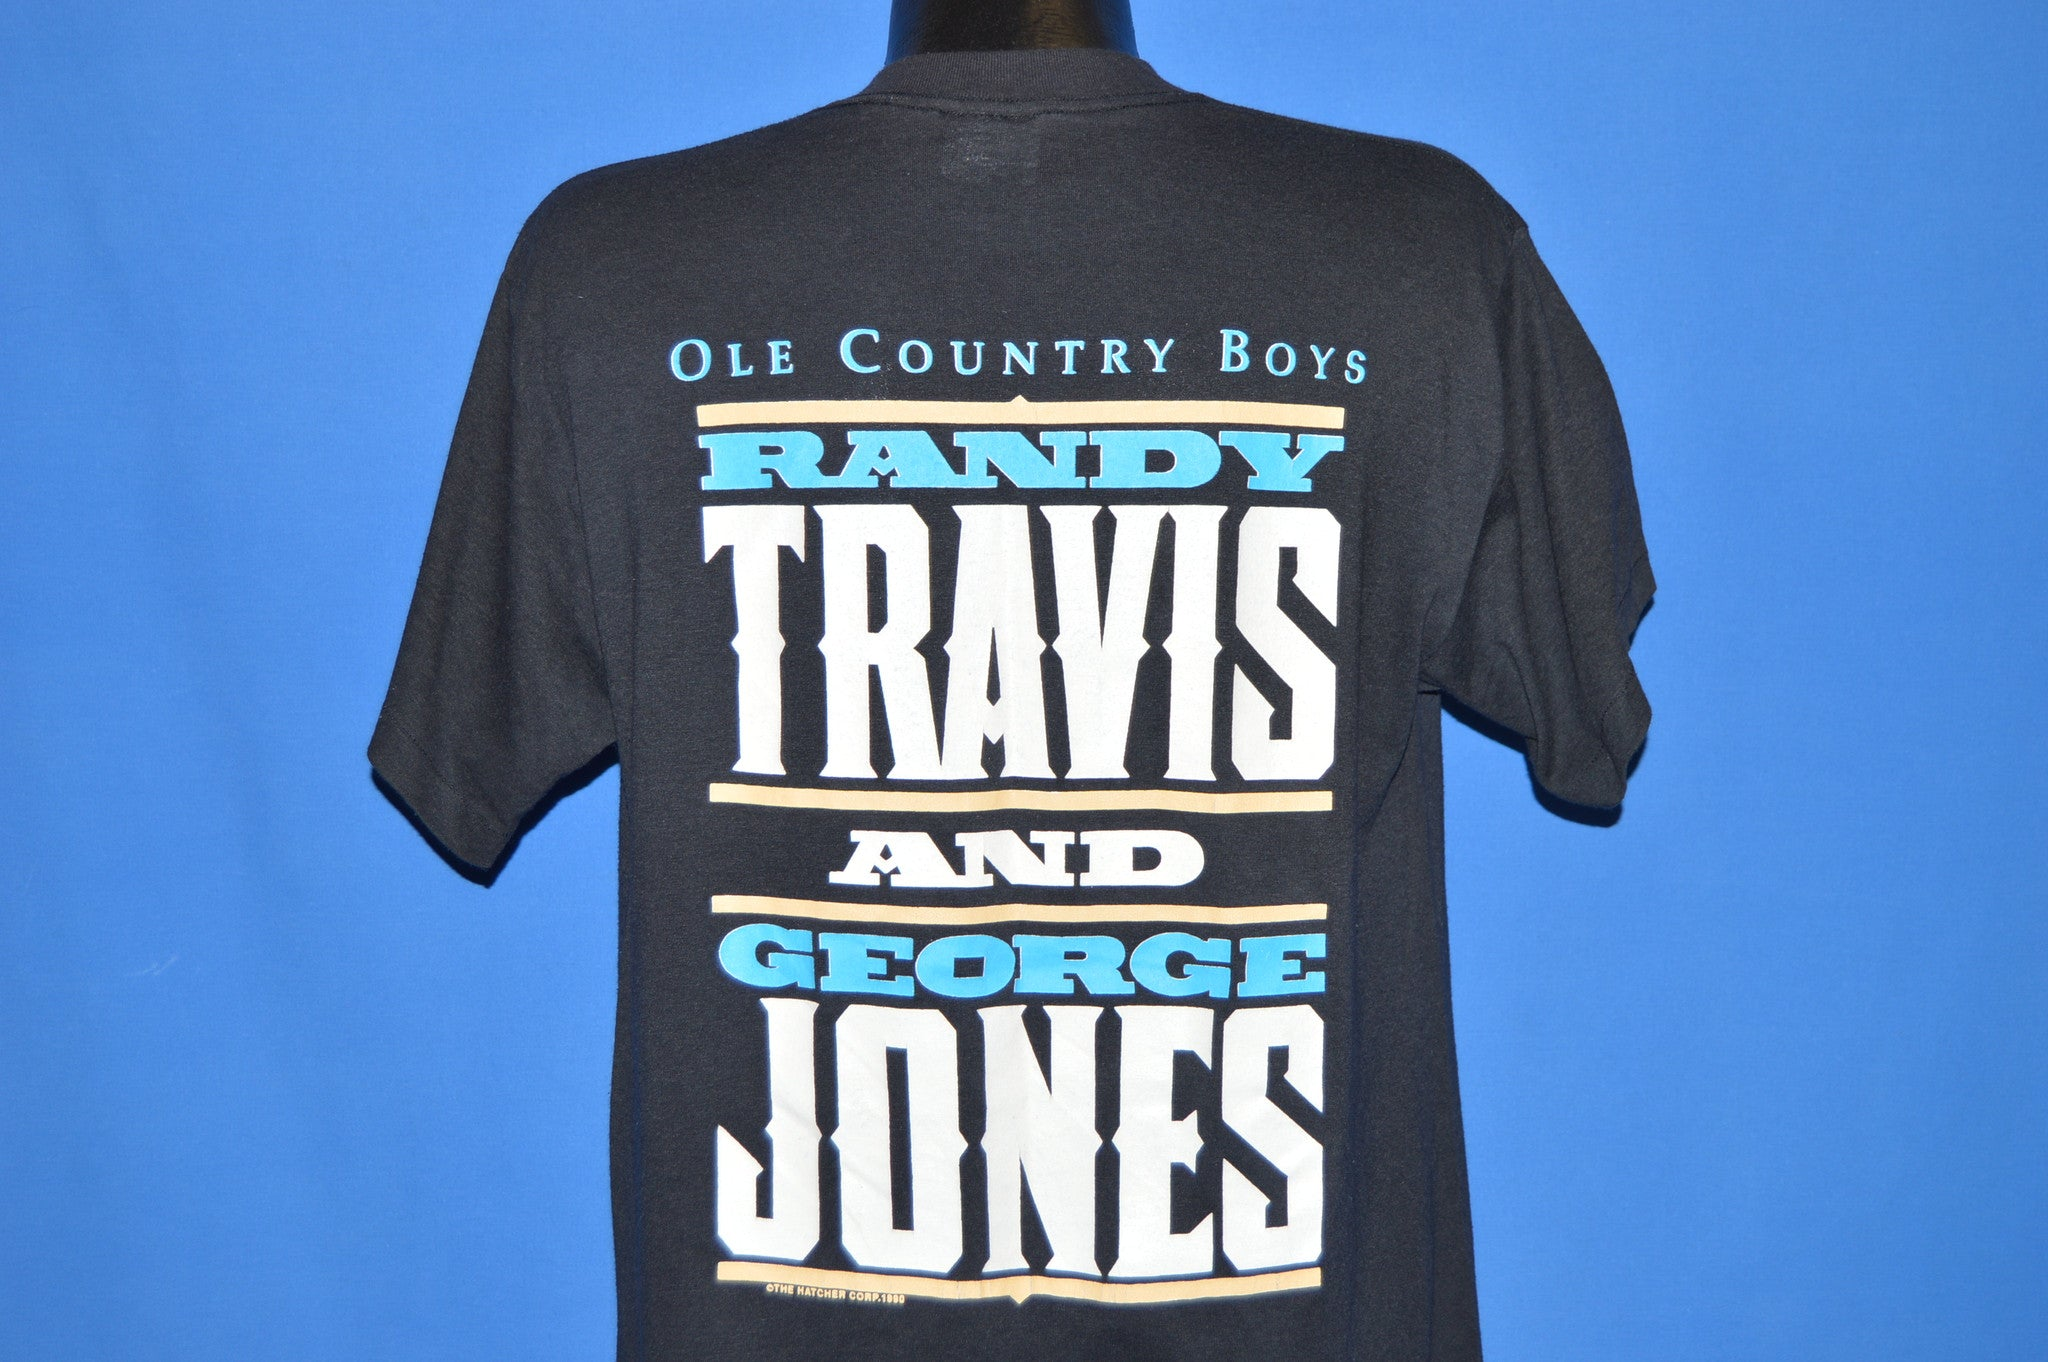 Large Randy Travis tshirt mens western shirt zbCZEVtS